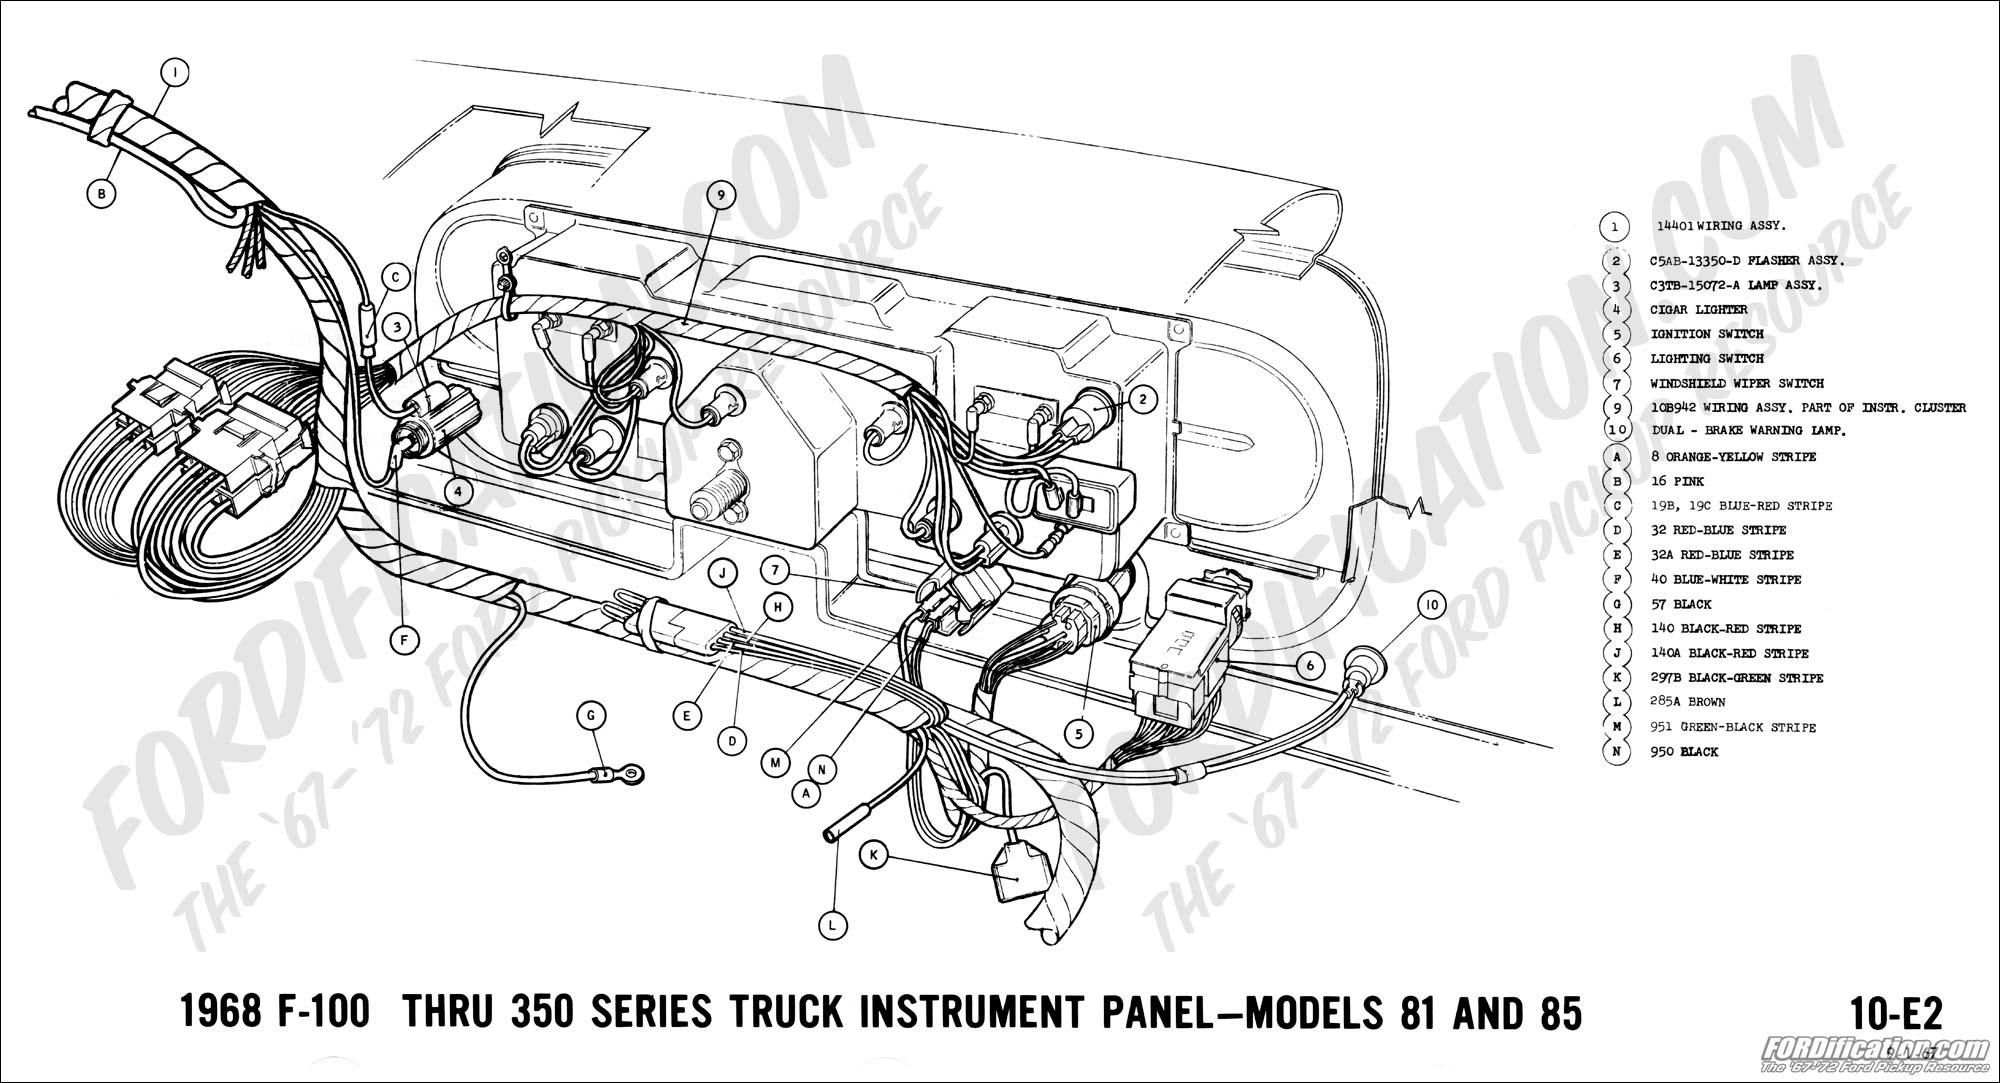 1970 Ford F100 Wiring Diagram Circuit Schematic Truck Fuse Technical Drawings And Schematics Section H 1966 1968 F